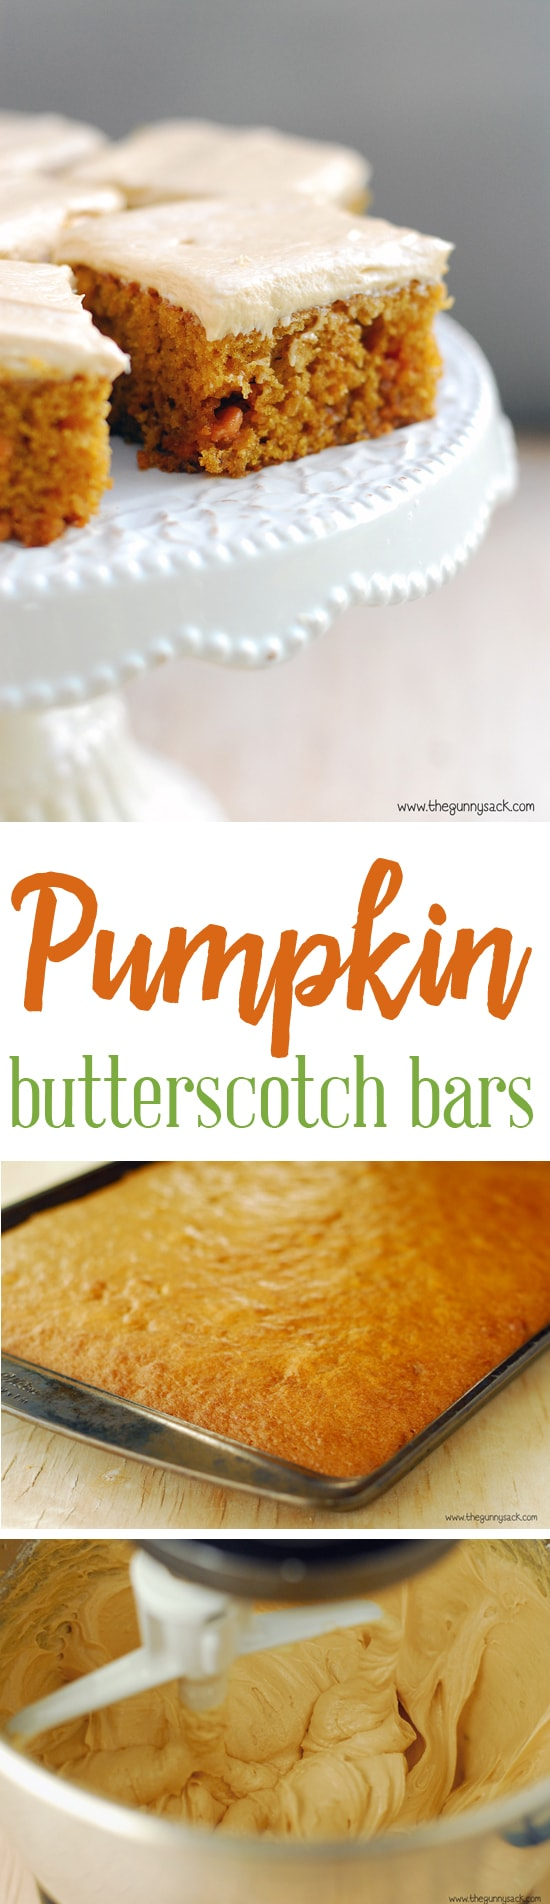 Pumpkin__Butterscotch-Bars_Recipe